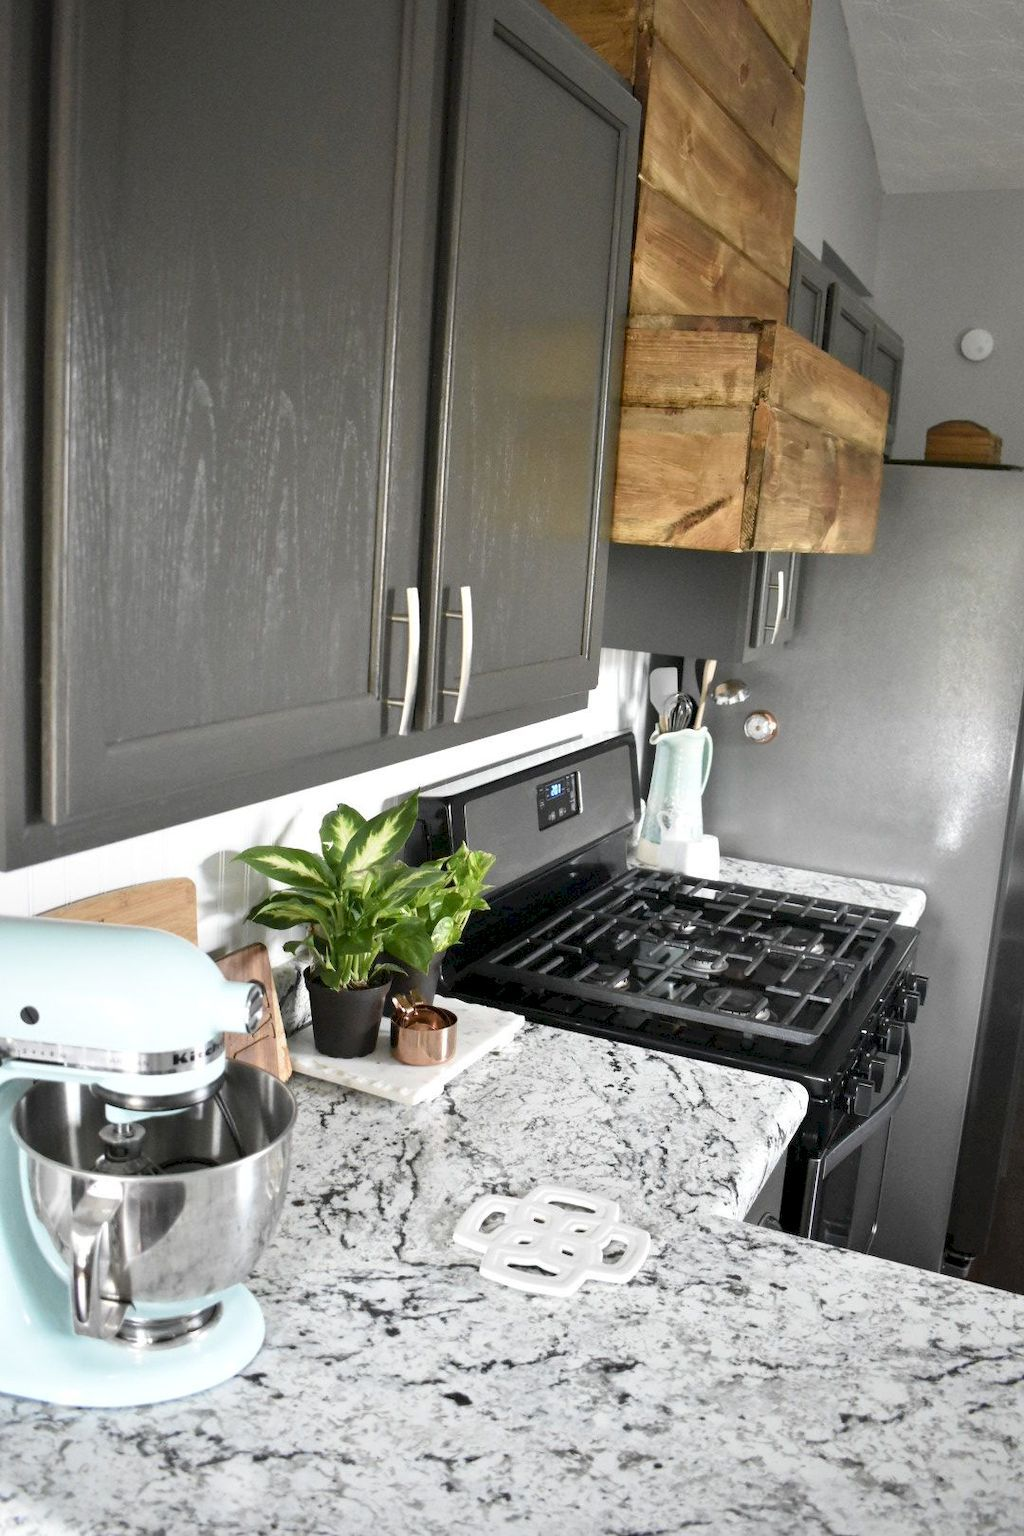 Top 50 Amazing Ideas For Your Kitchen Countertop | Kitchen Designs Ideas Countertop Pinterest Kitchenllaminate on